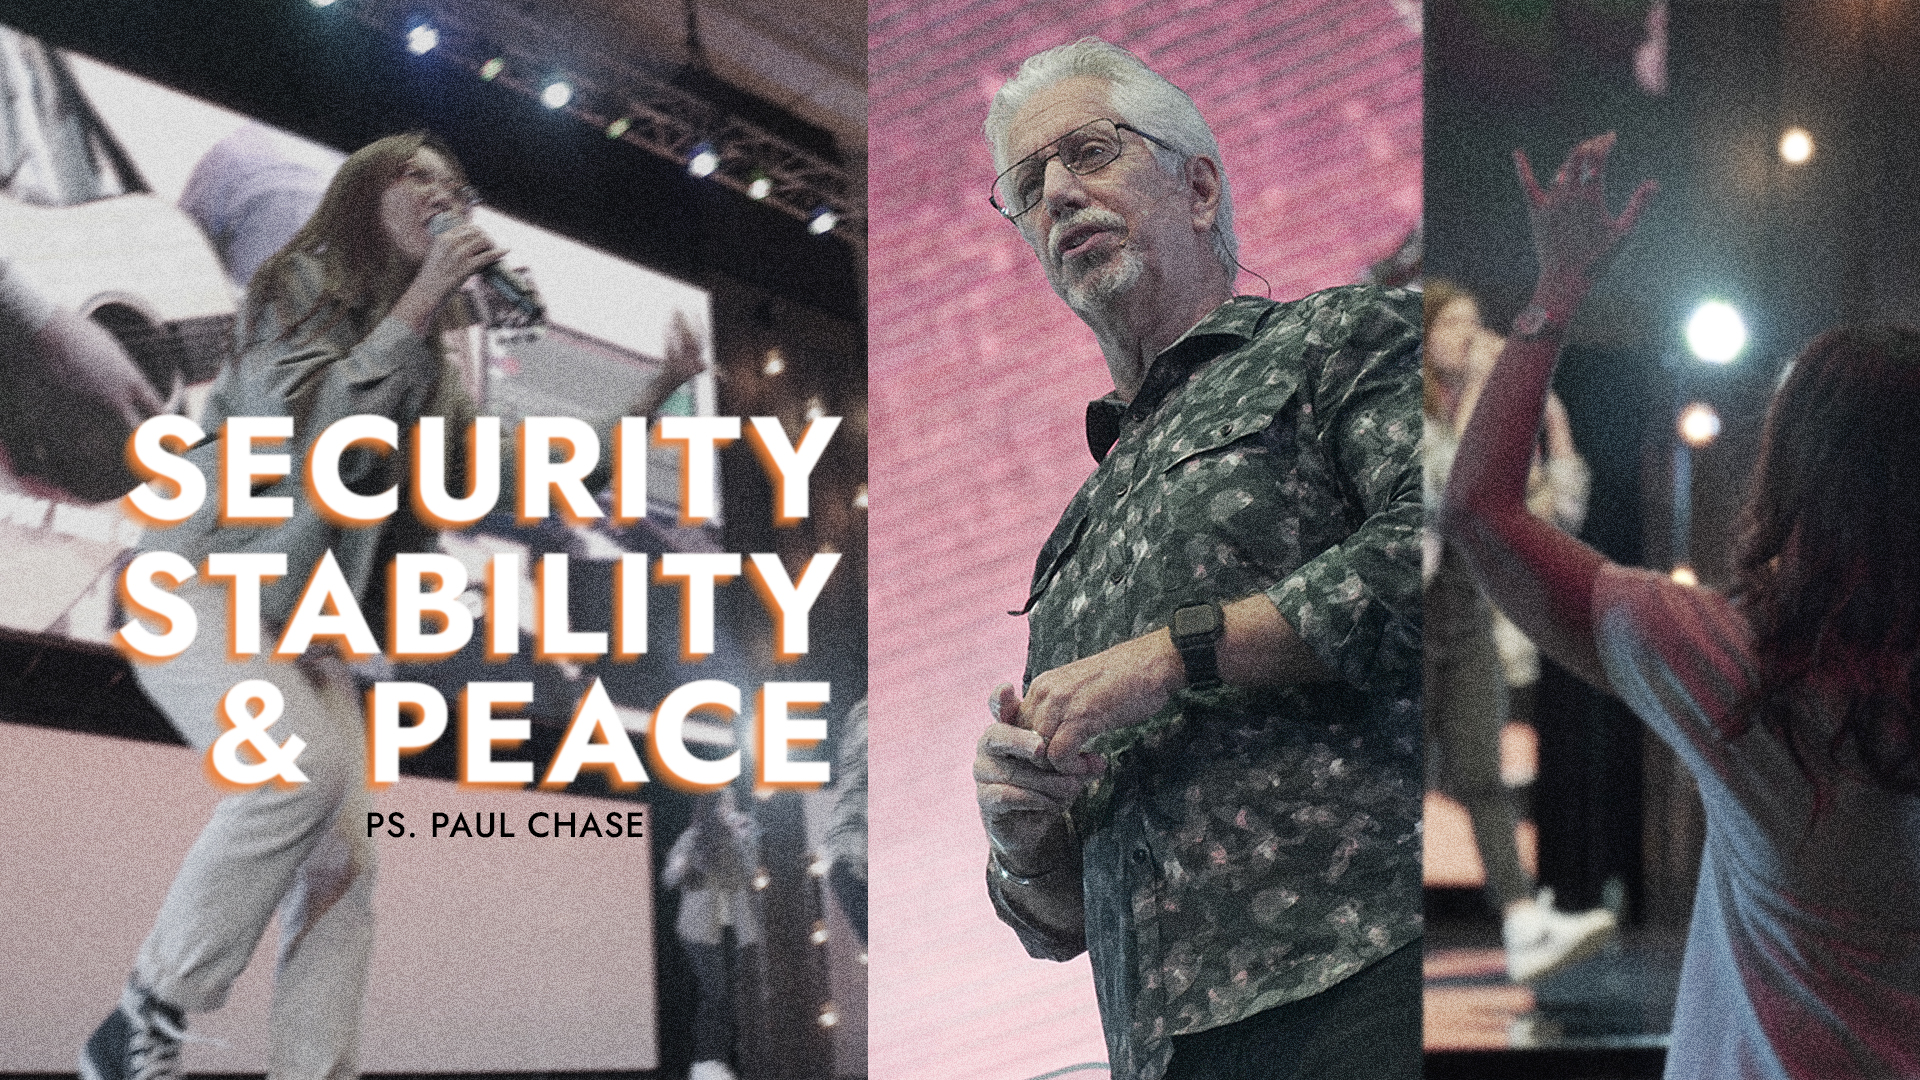 SECURITY, STABILITY & PEACE Image